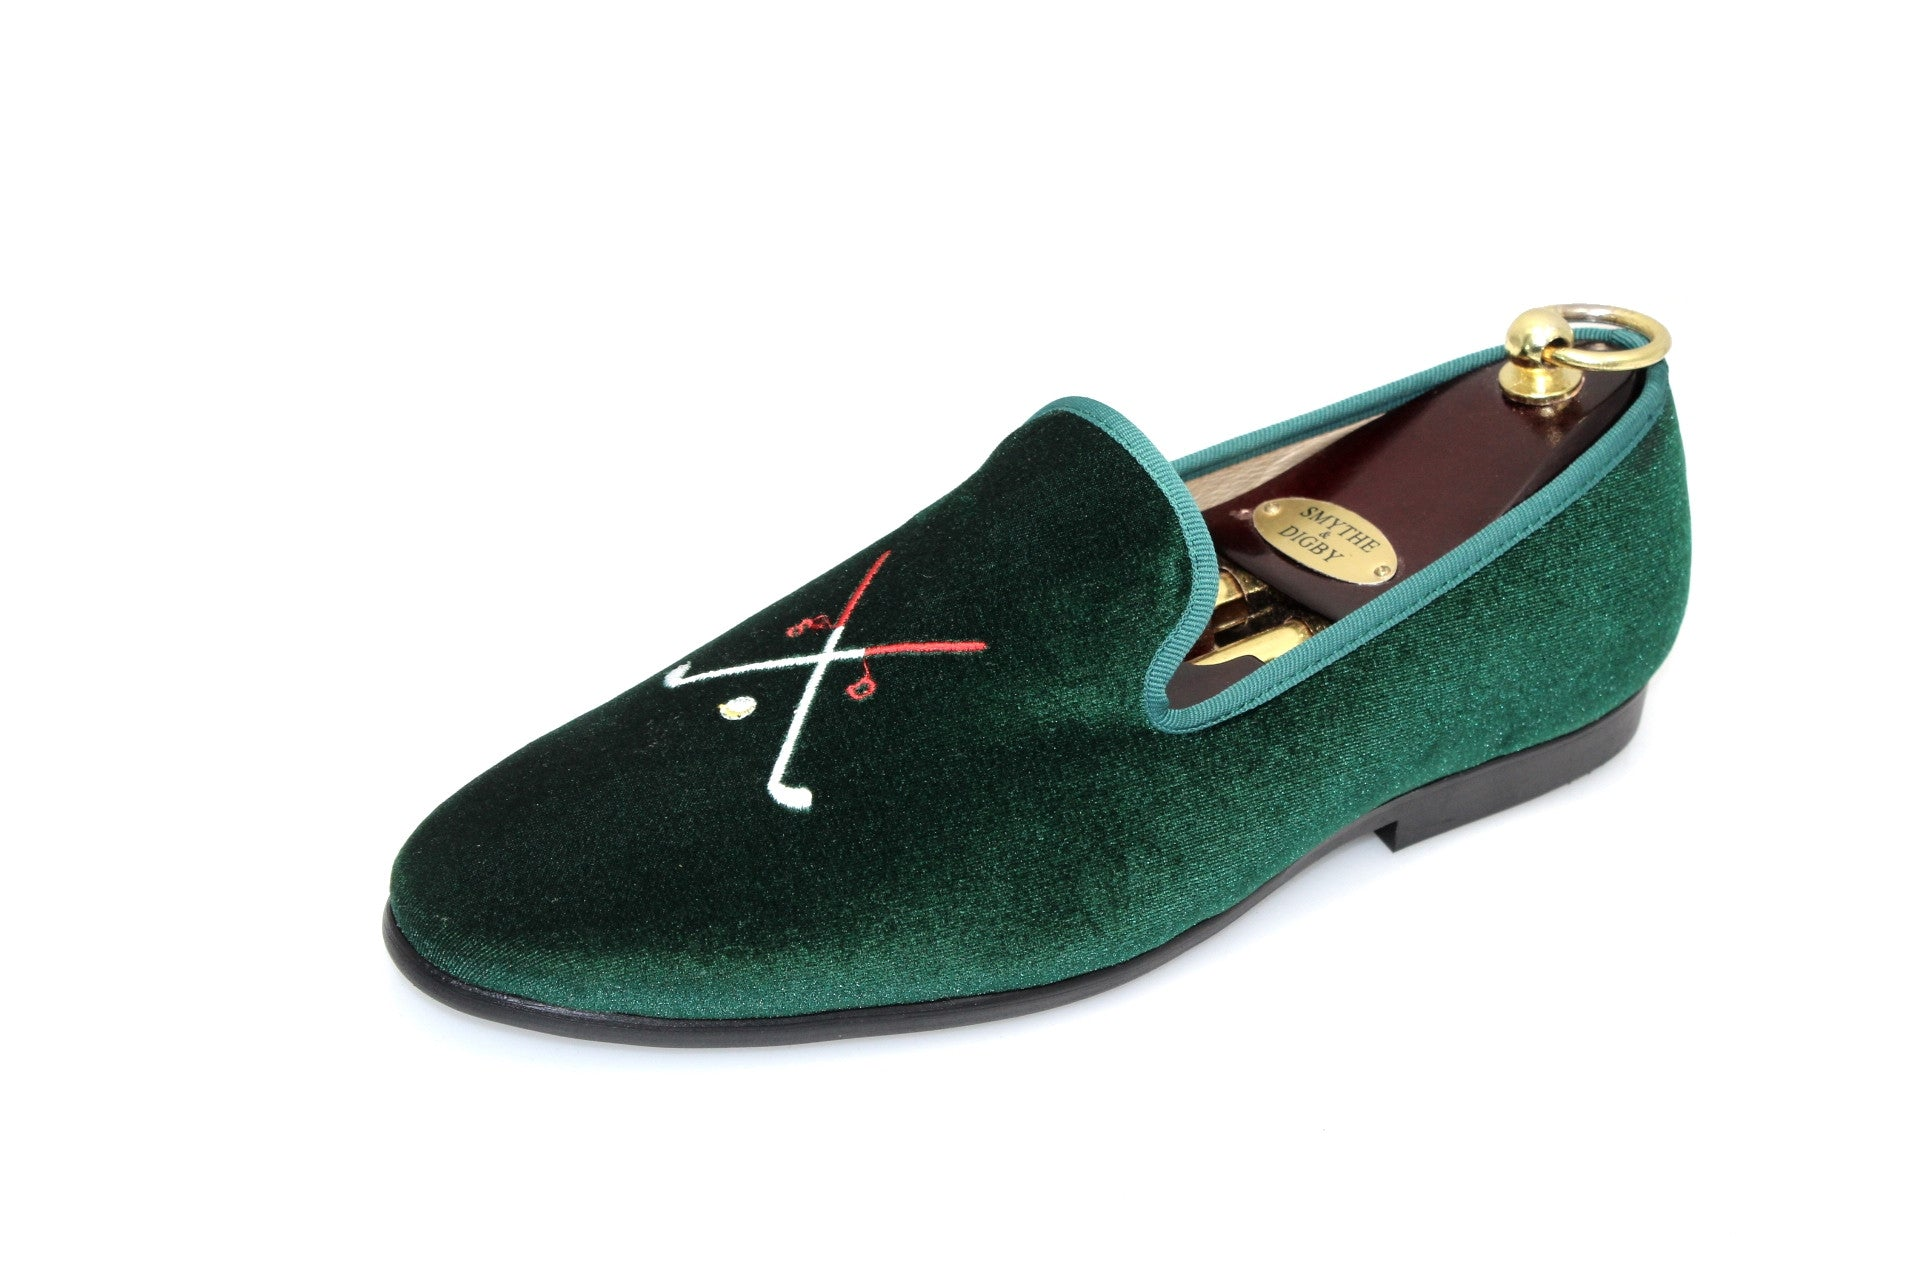 Smythe & Digby Men's Embroidered Velvet Slippers Golf Motif